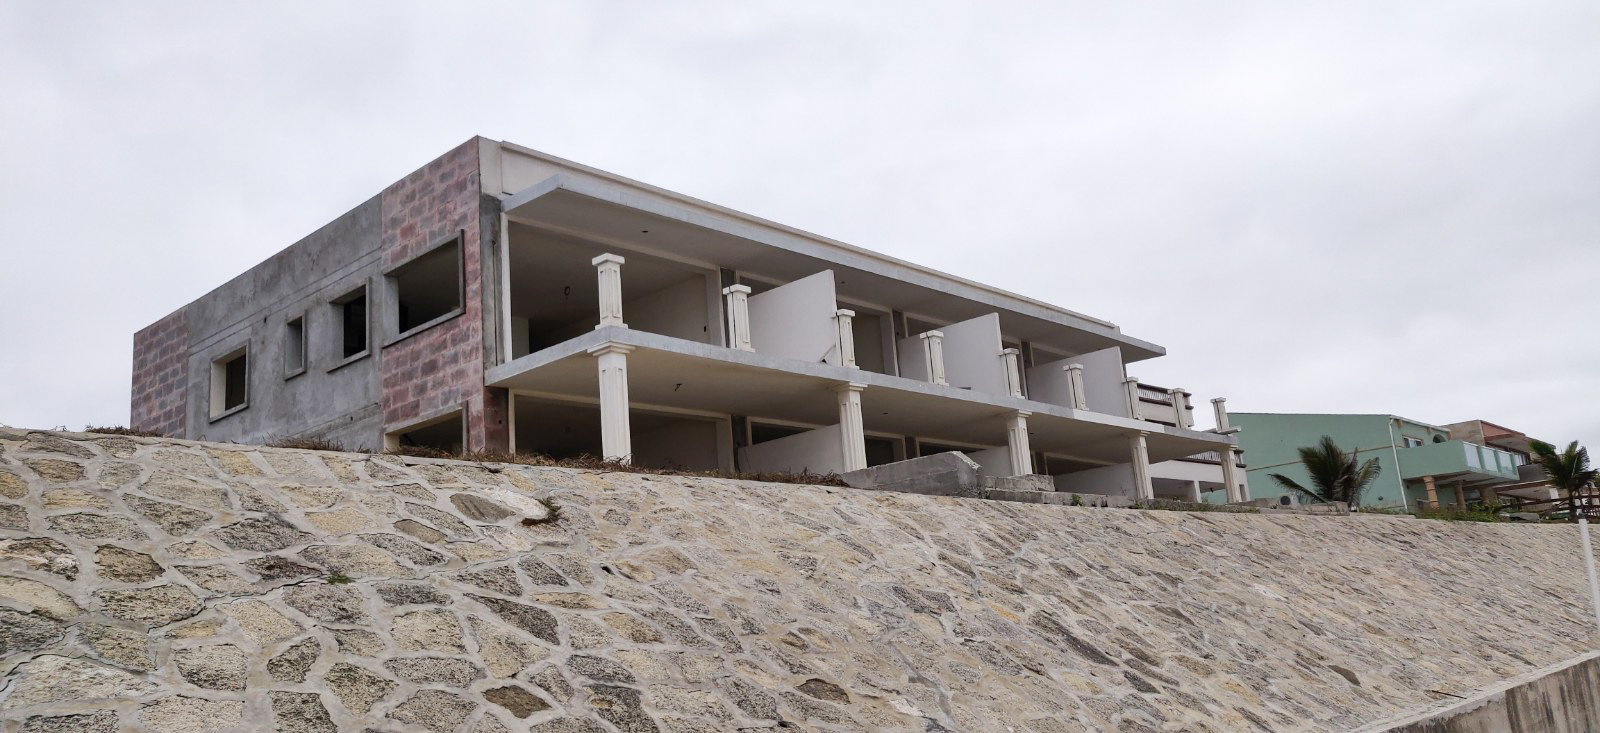 Abandoned condo project